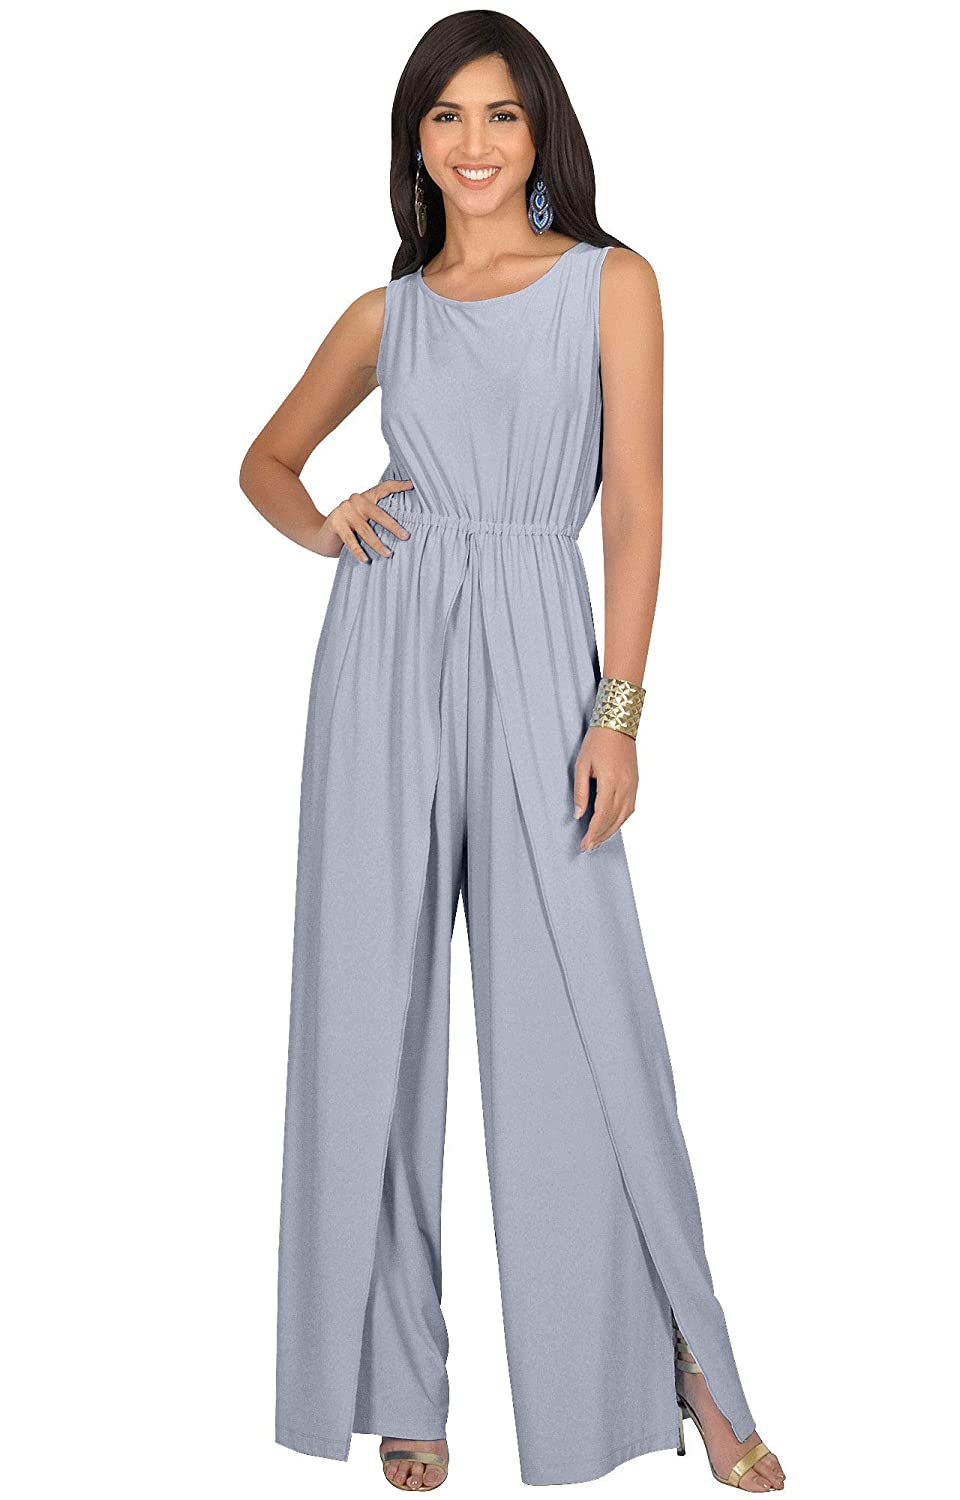 ae4ebf3e09e Amazon.com  KOH KOH Womens Sleeveless Cocktail Wide Leg One Piece Jumpsuit  Romper Playsuit  Clothing